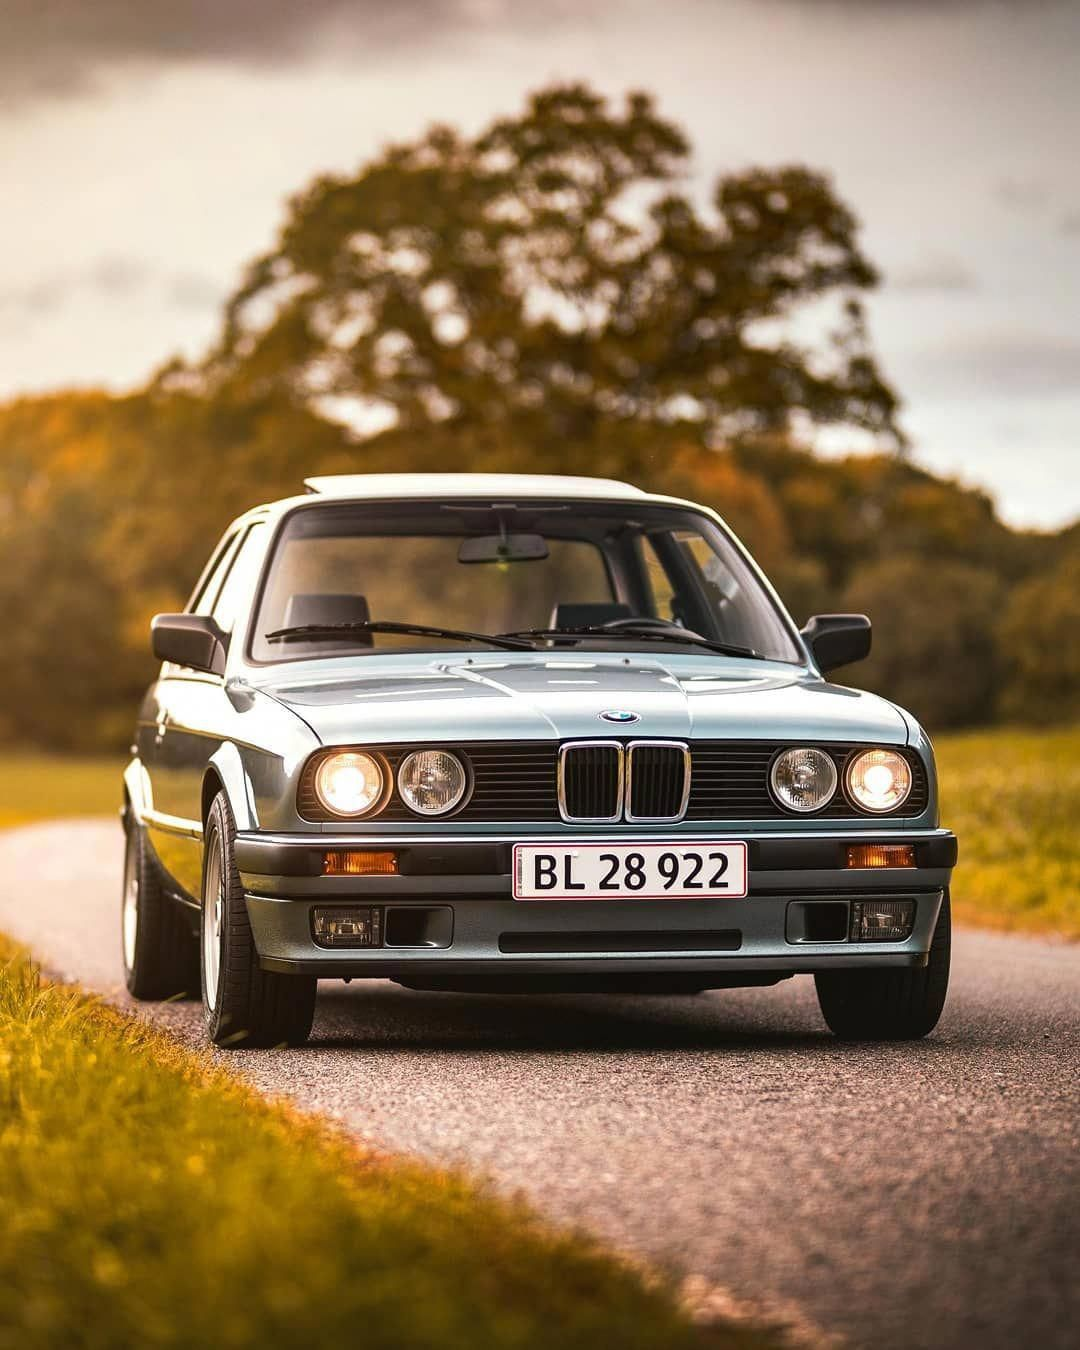 The Bmw 3 Series E30 Is A Dream Car For Many But A Reality